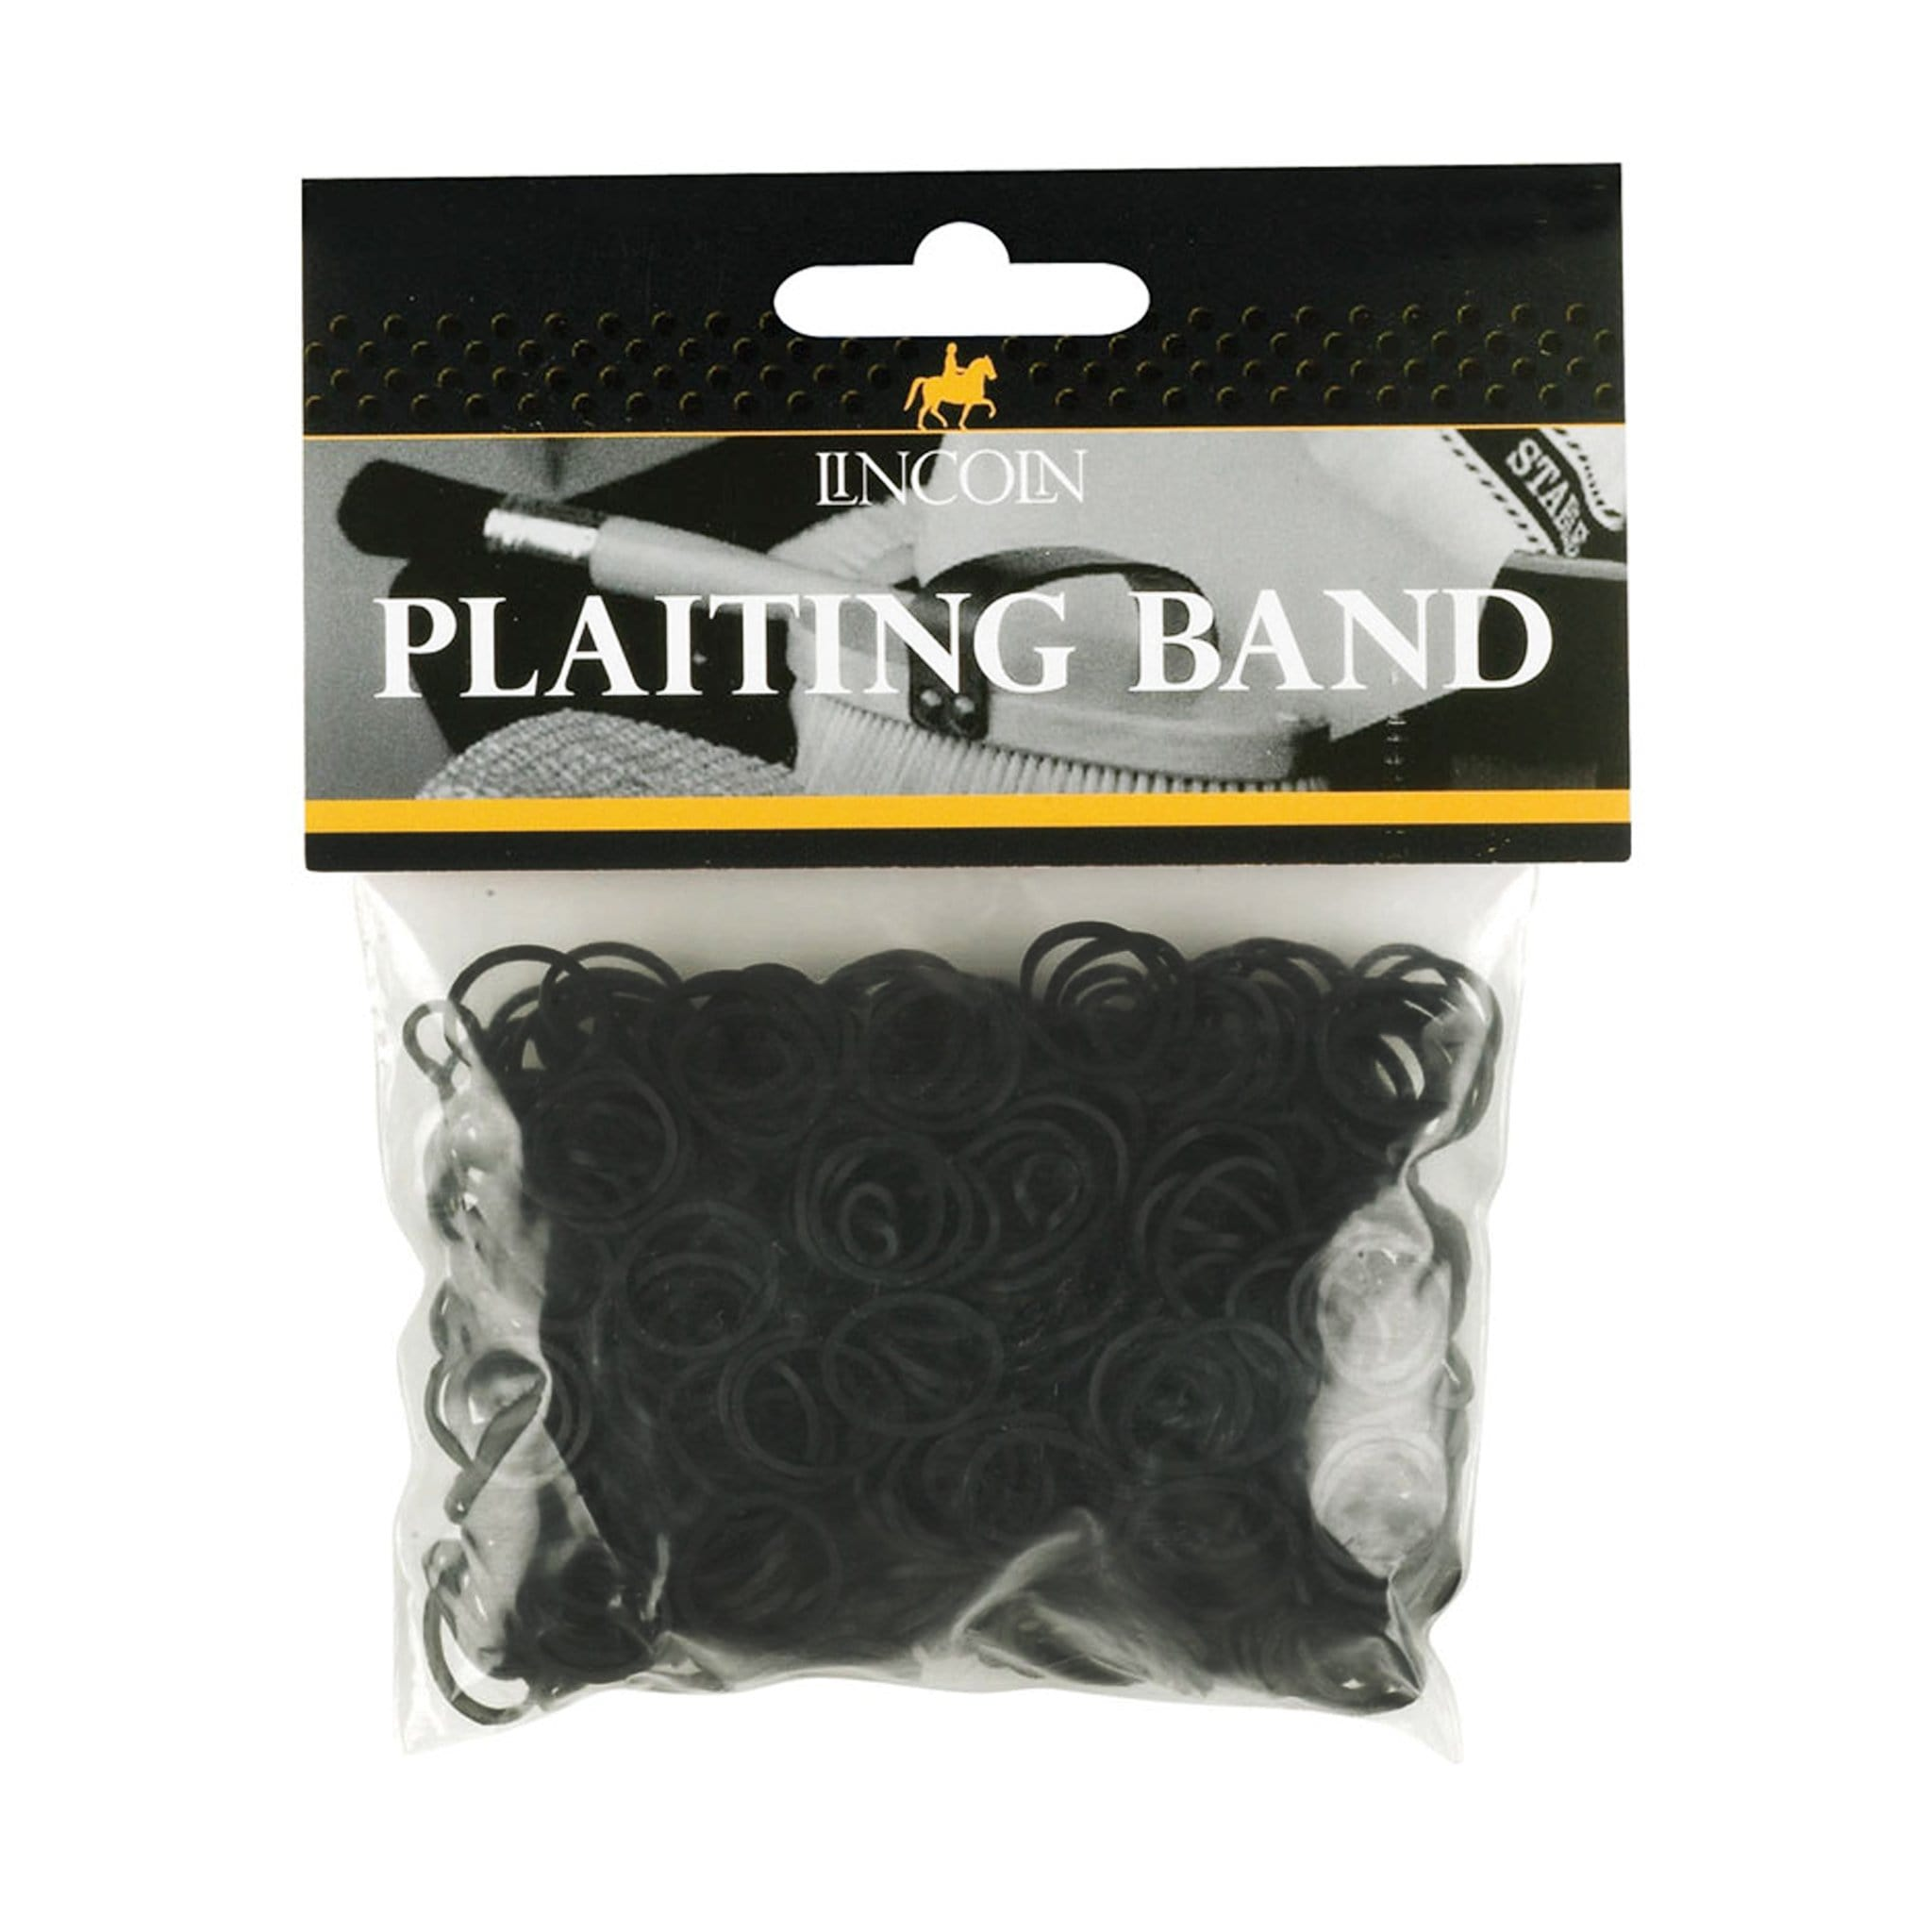 Lincoln Plaiting Bands 4032